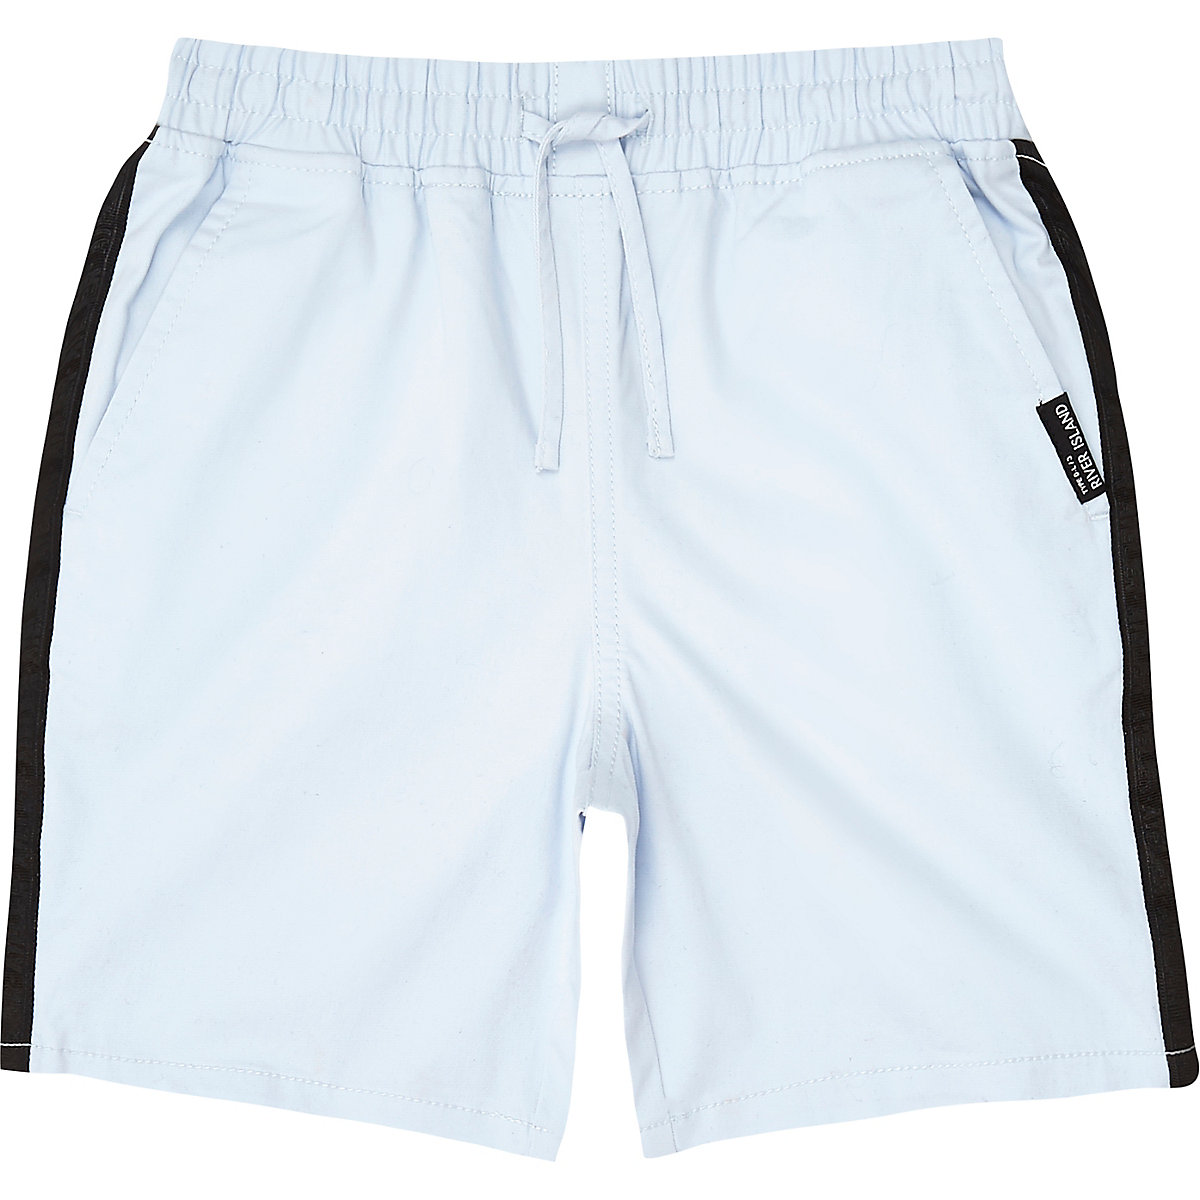 Boys blue tape straight shorts